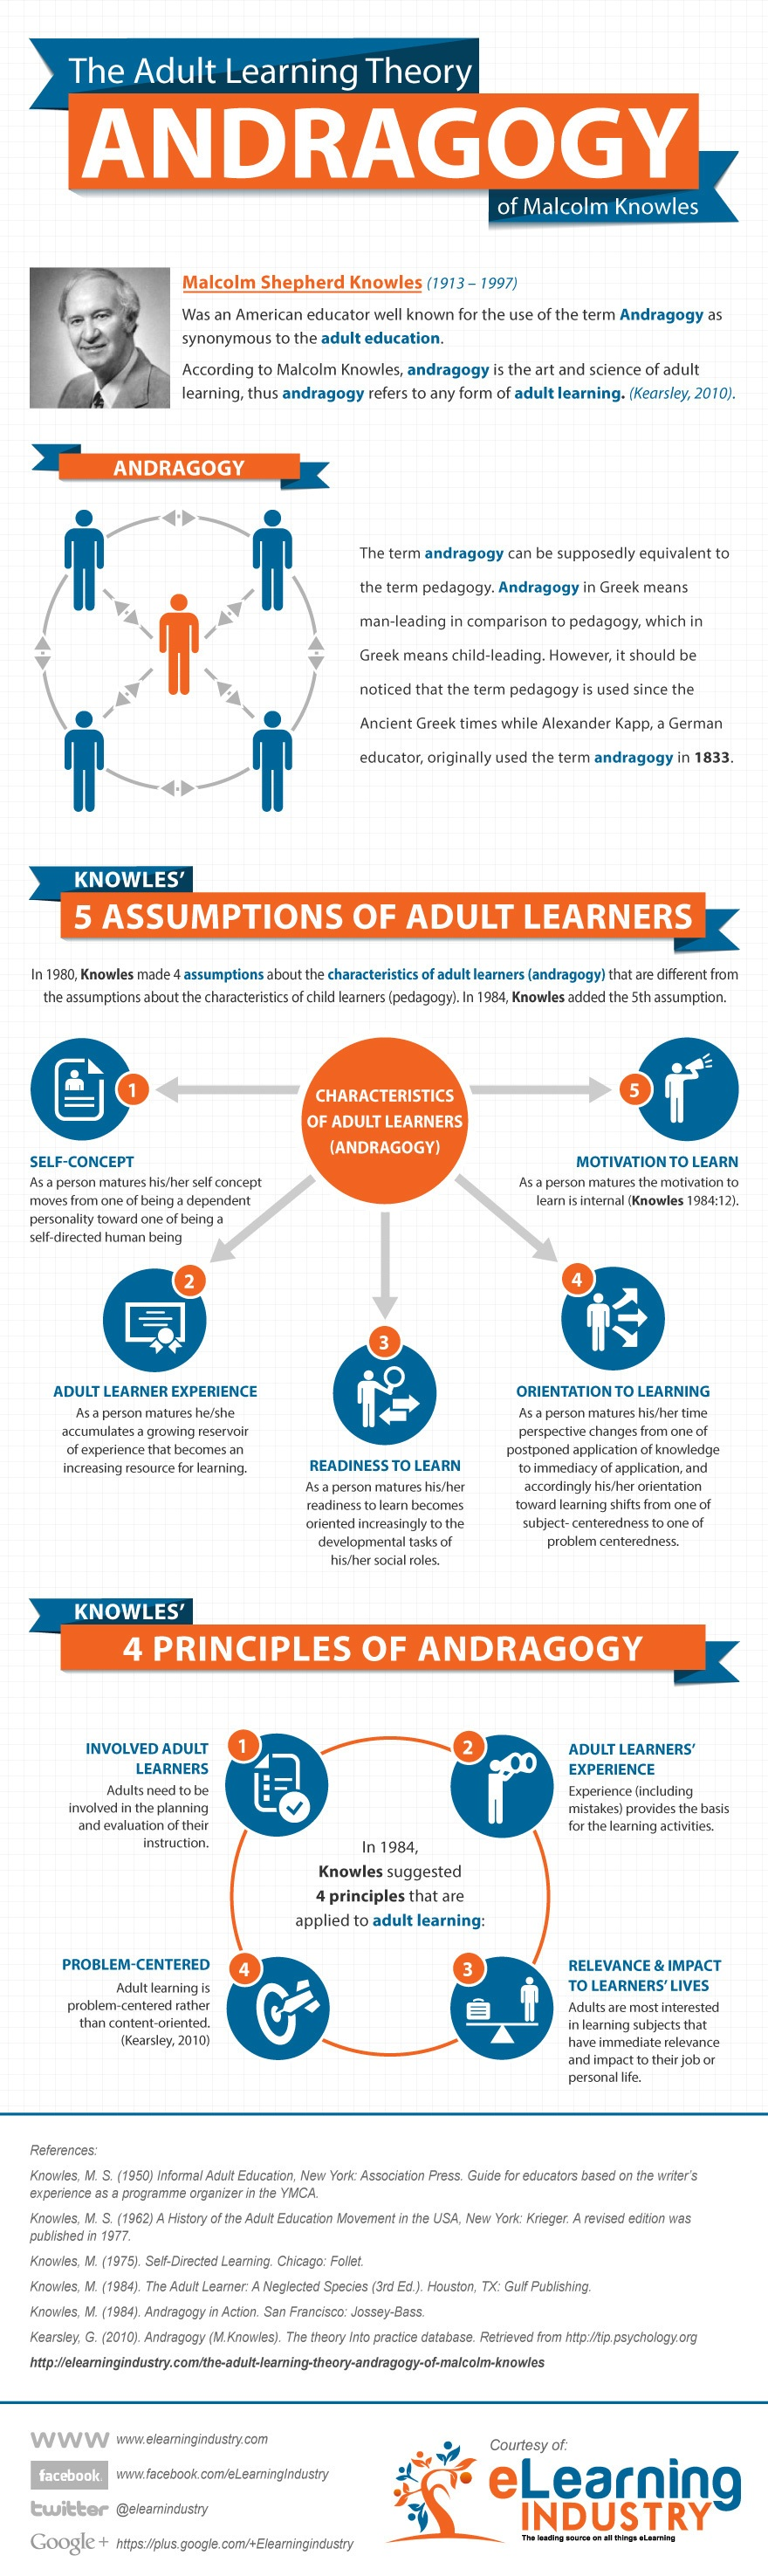 The-Adult-Learning-Theory-Andragogy-Infographic